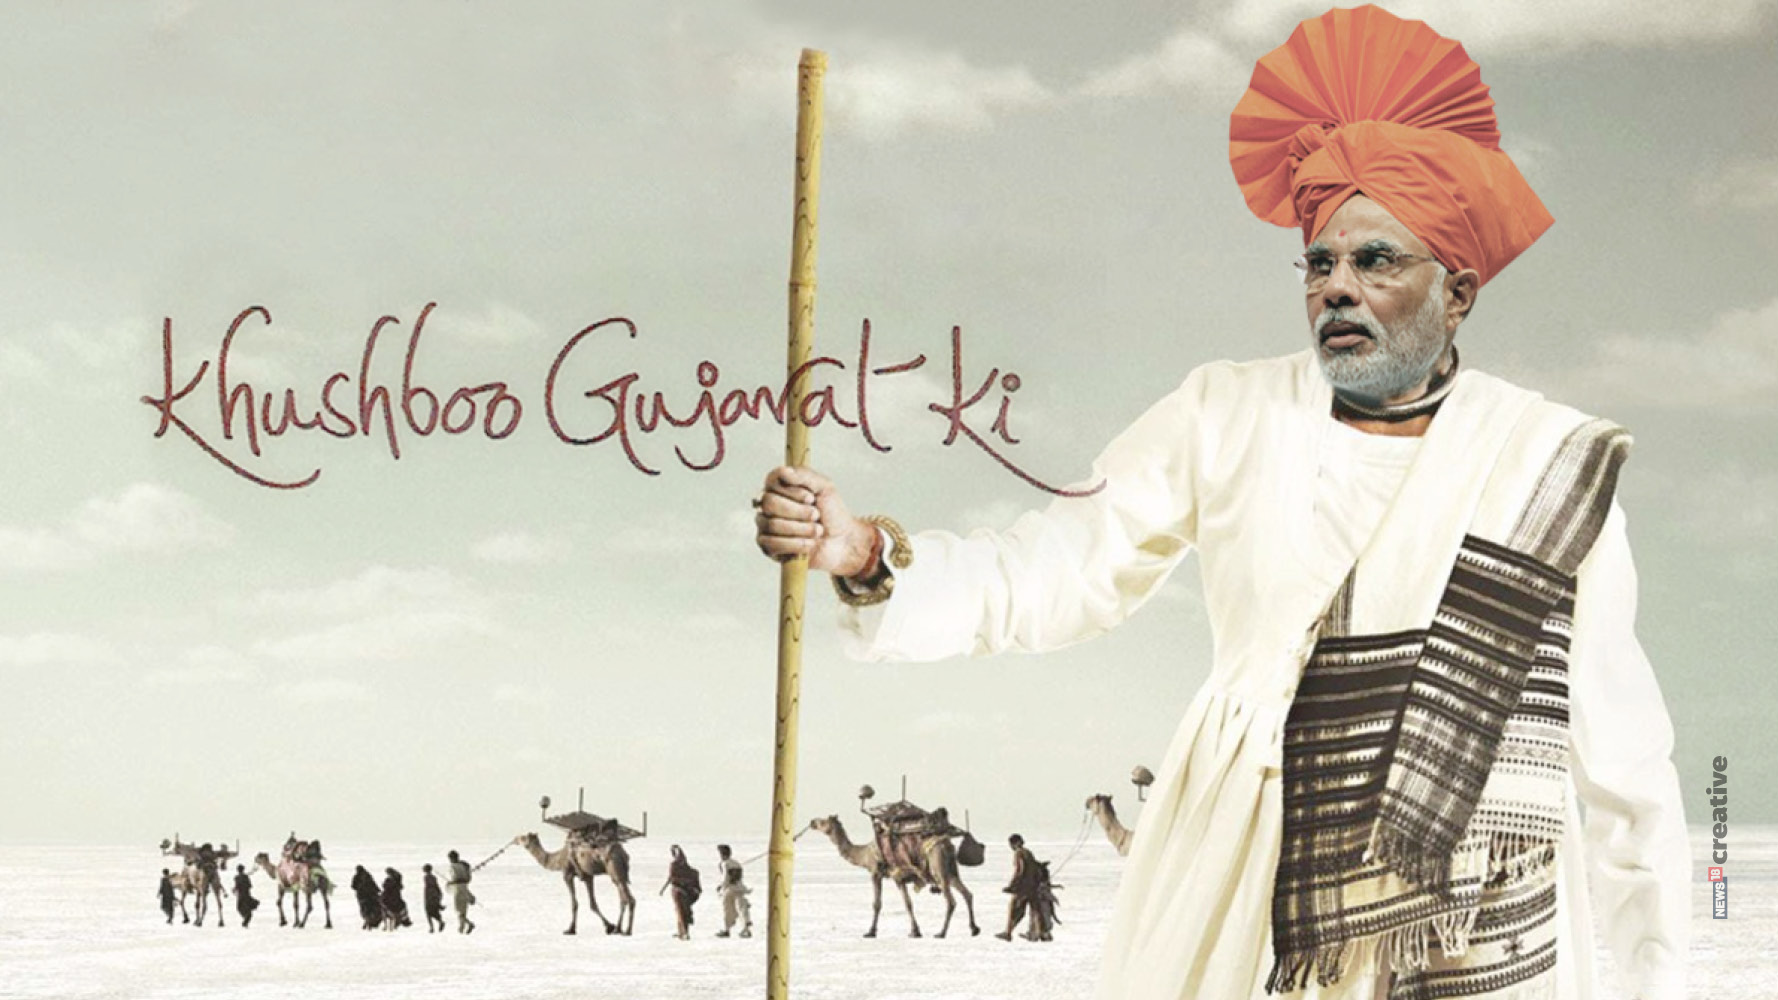 The BJP managed to hold the fort in Gujarat by winning majority, thanks to PM Narendra Modi's campaigning in the final leg of the Assembly election.